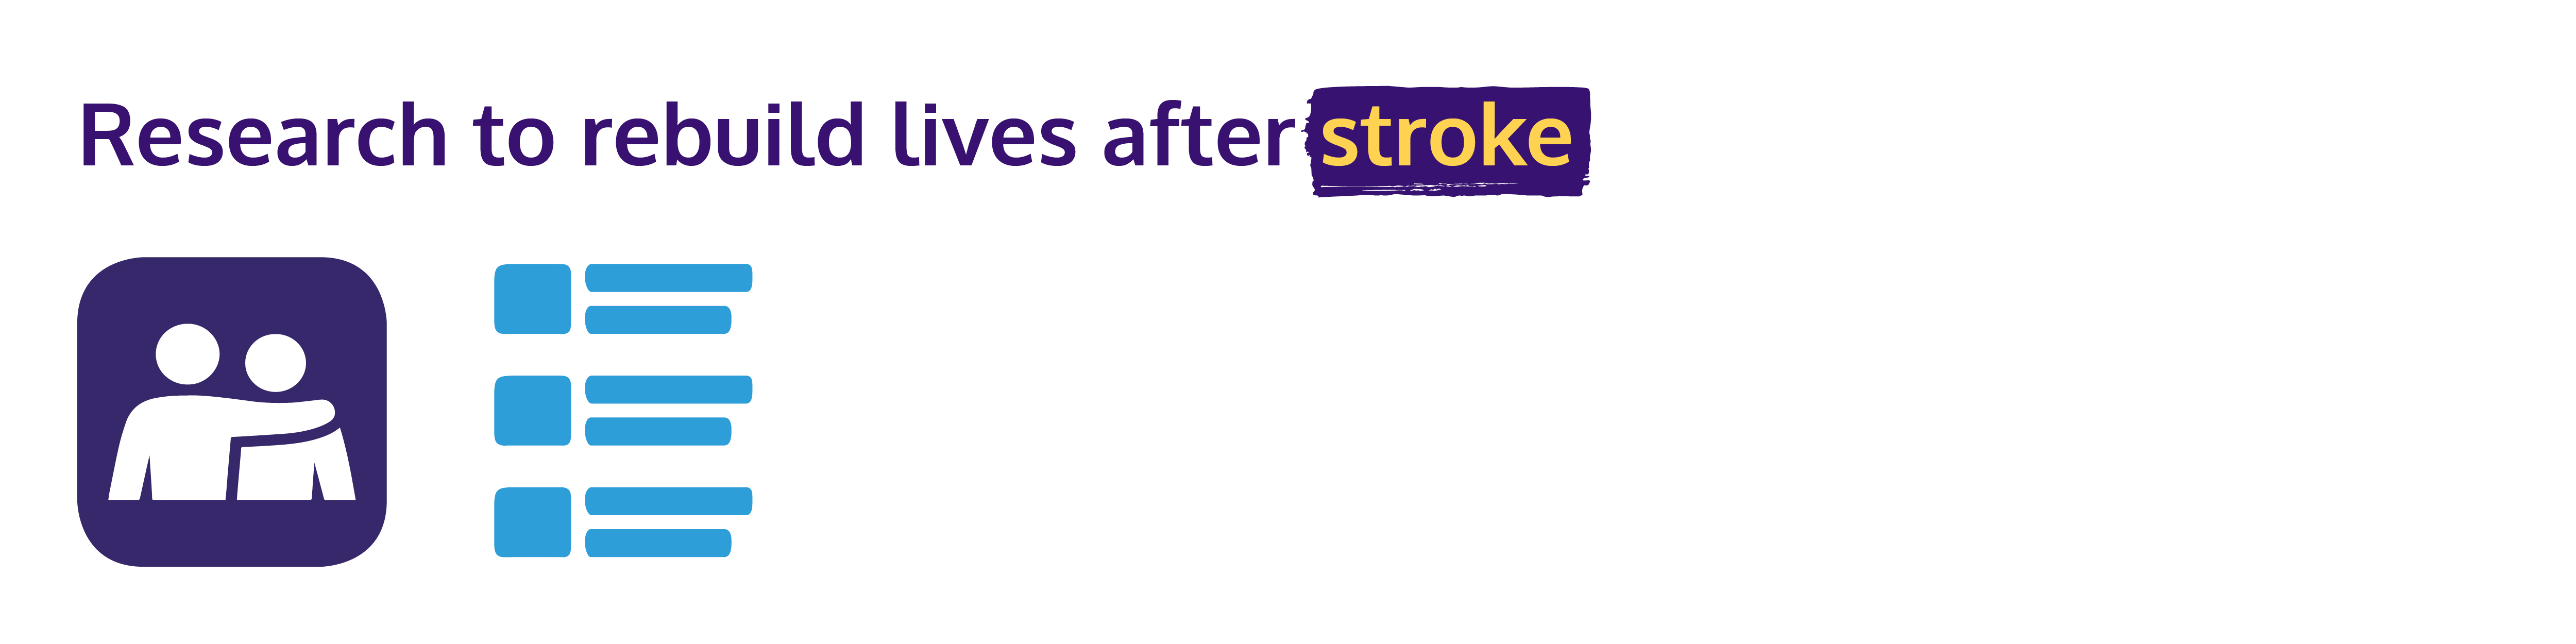 Research to rebuild lives after stroke